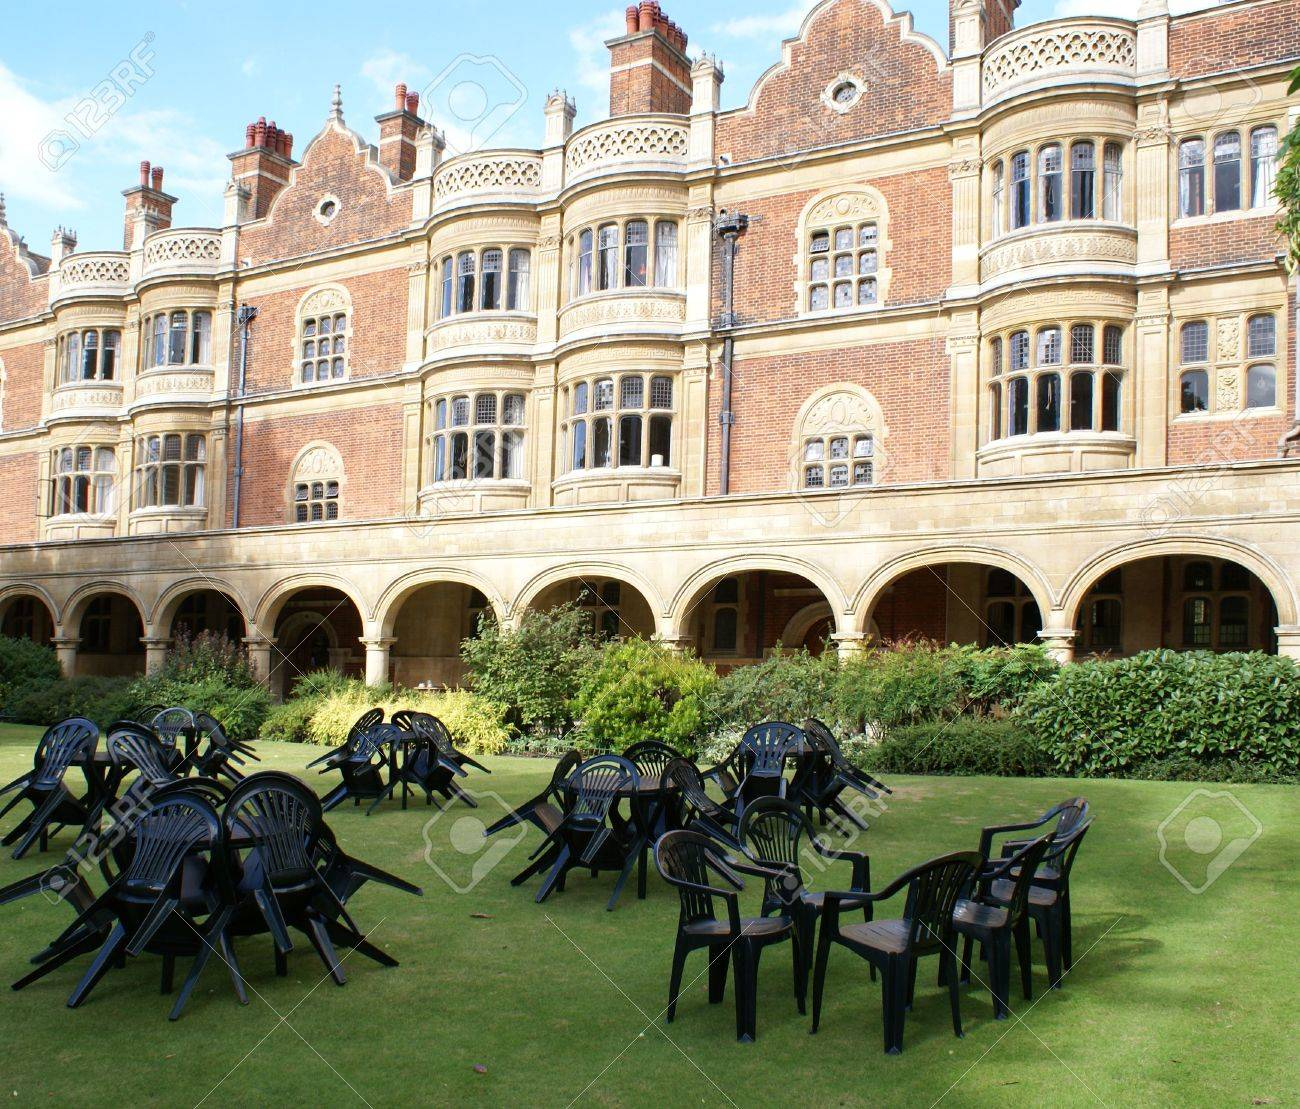 Plastic tables and chairs on the lawn in the courtyard of Sidney Sussex College, Cambridge University Stock Photo - 5860402